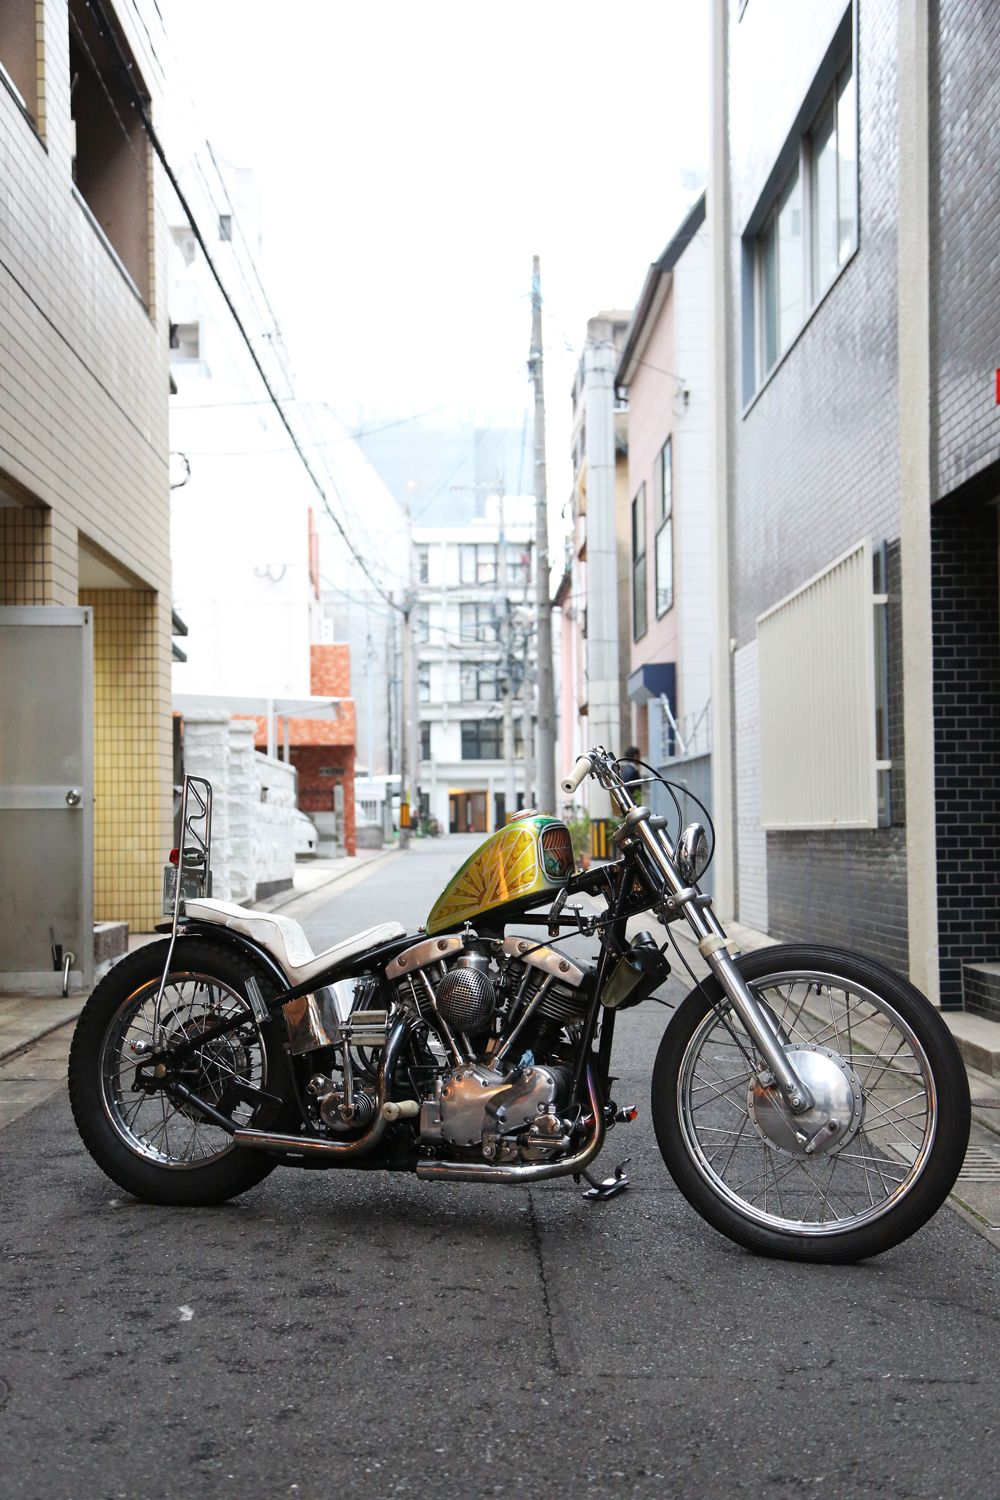 California Cycles old stuff: Early | Motorcycles | Pinterest ...